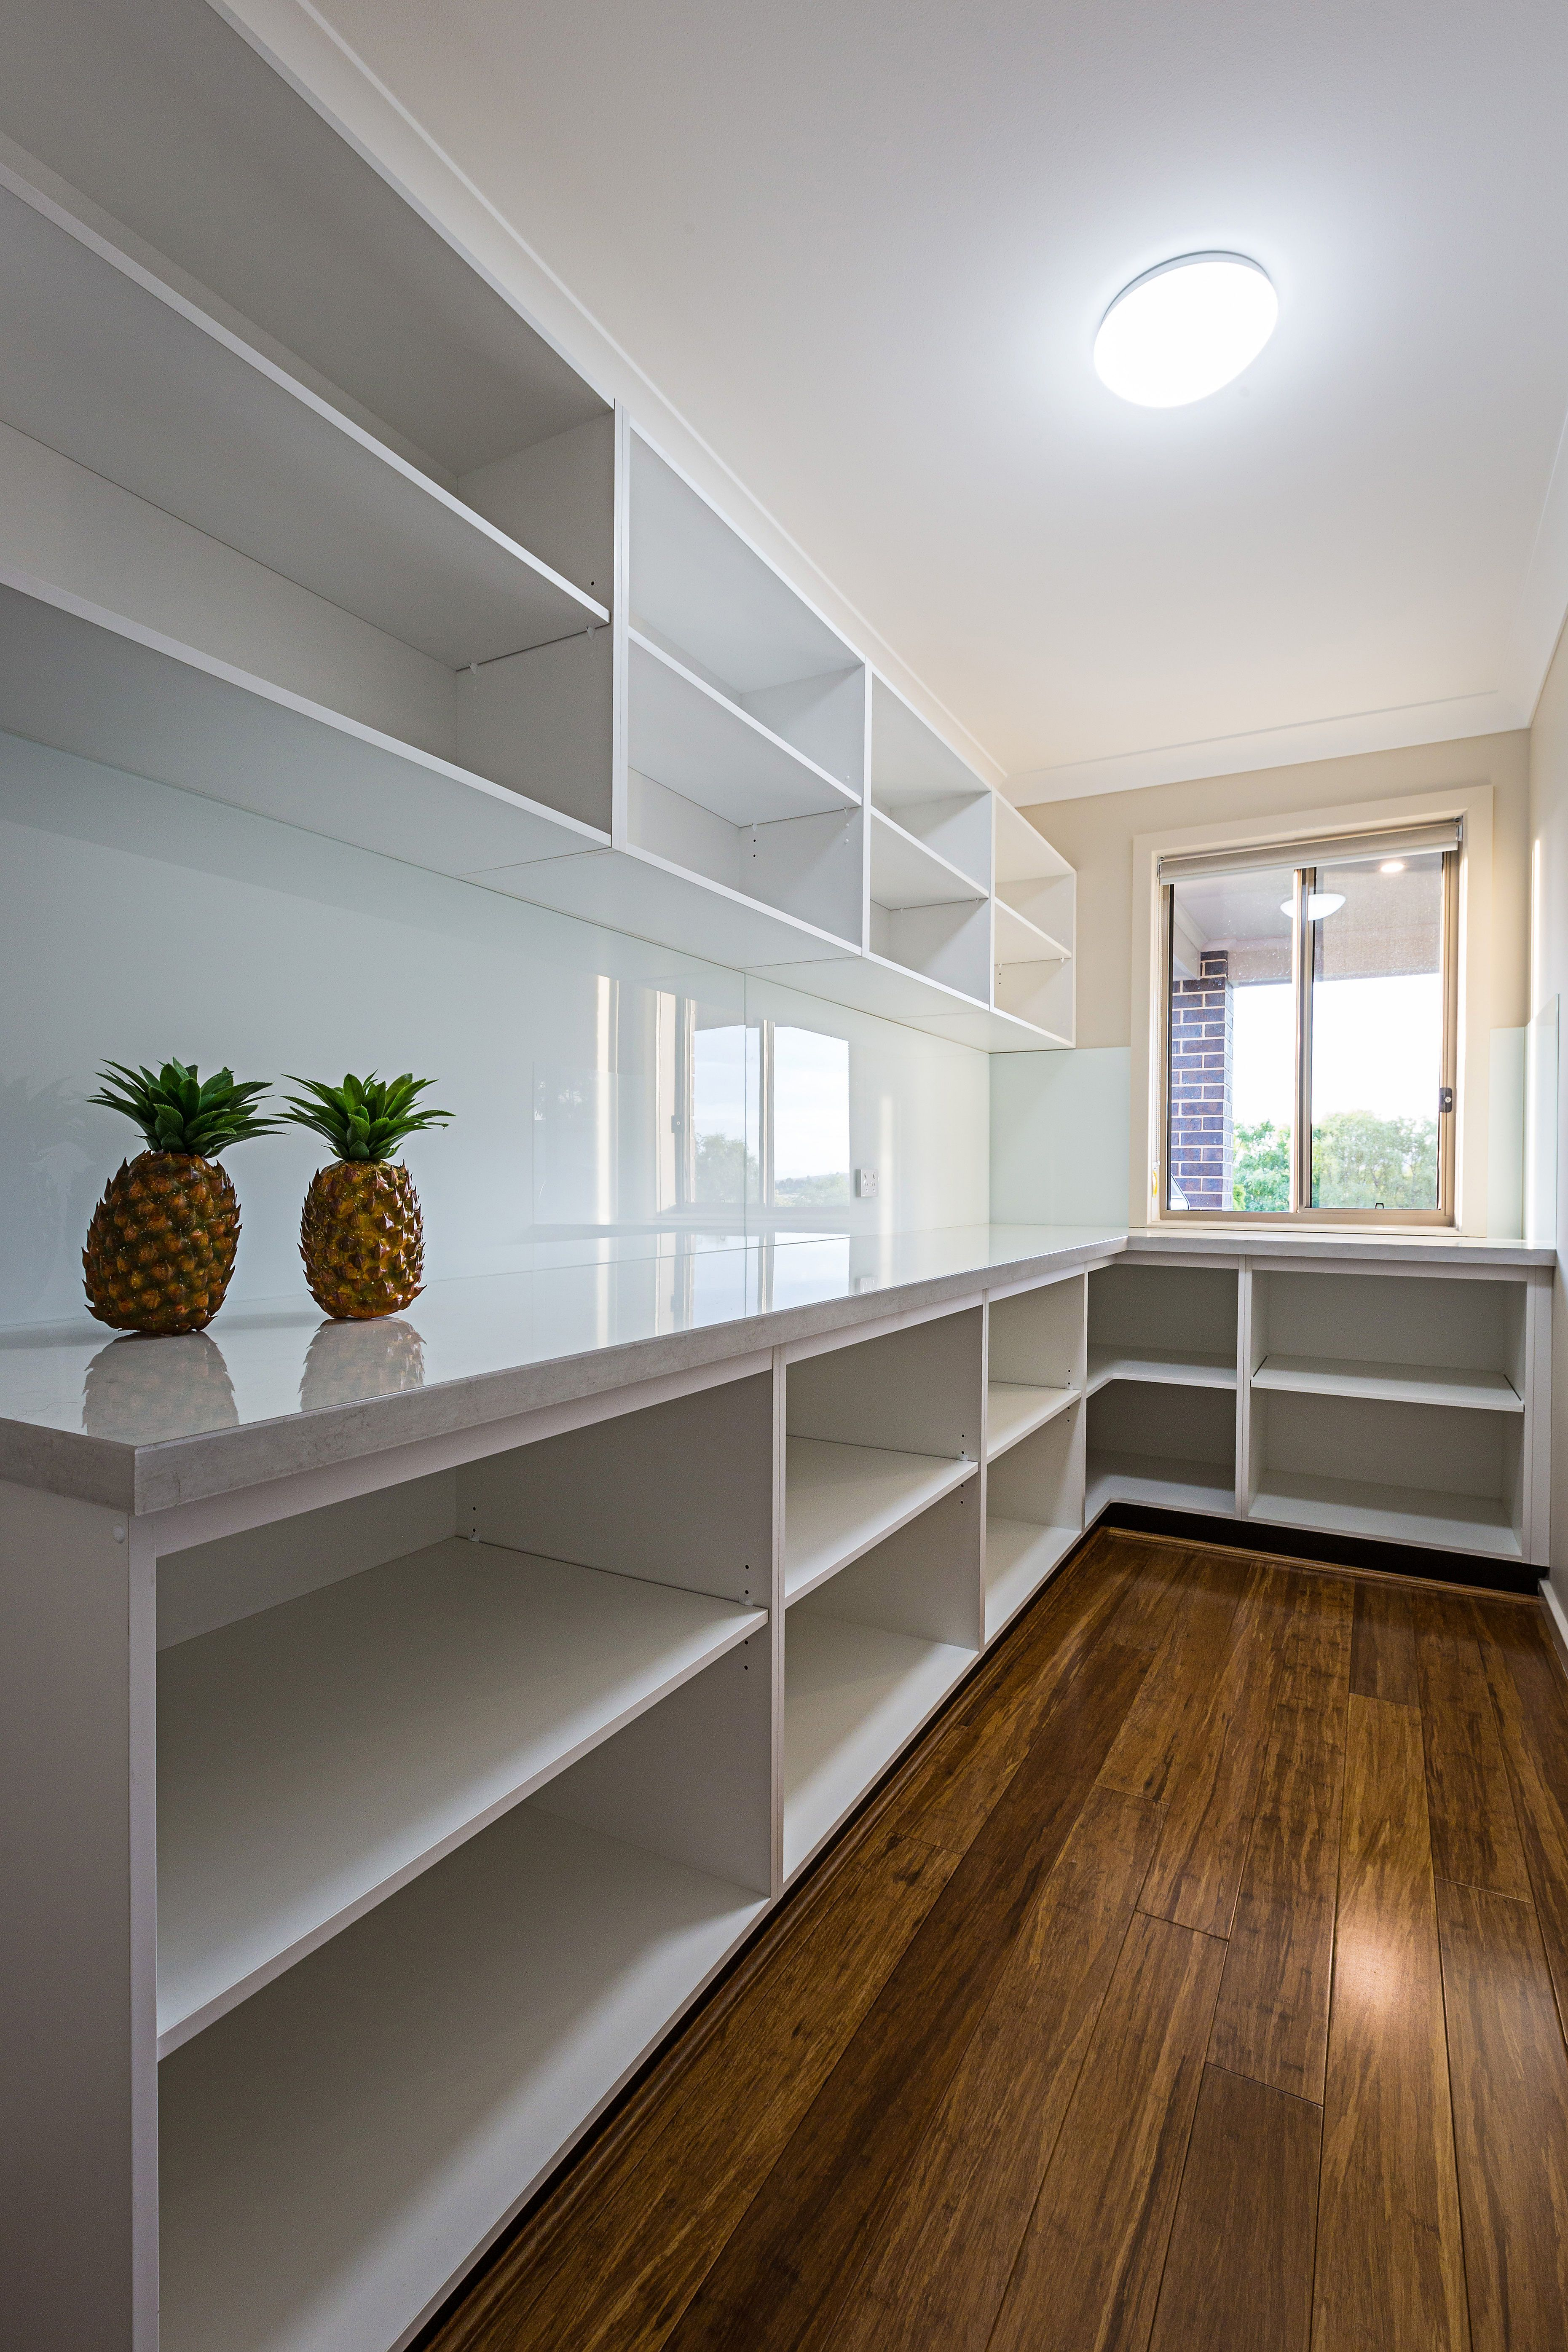 Adding A Window To Your Pantry Can Keep You Engaged With Your Guests Outdoors While You Prepar Kitchen Pantry Design Pantry Decor Interior Design Kitchen Small